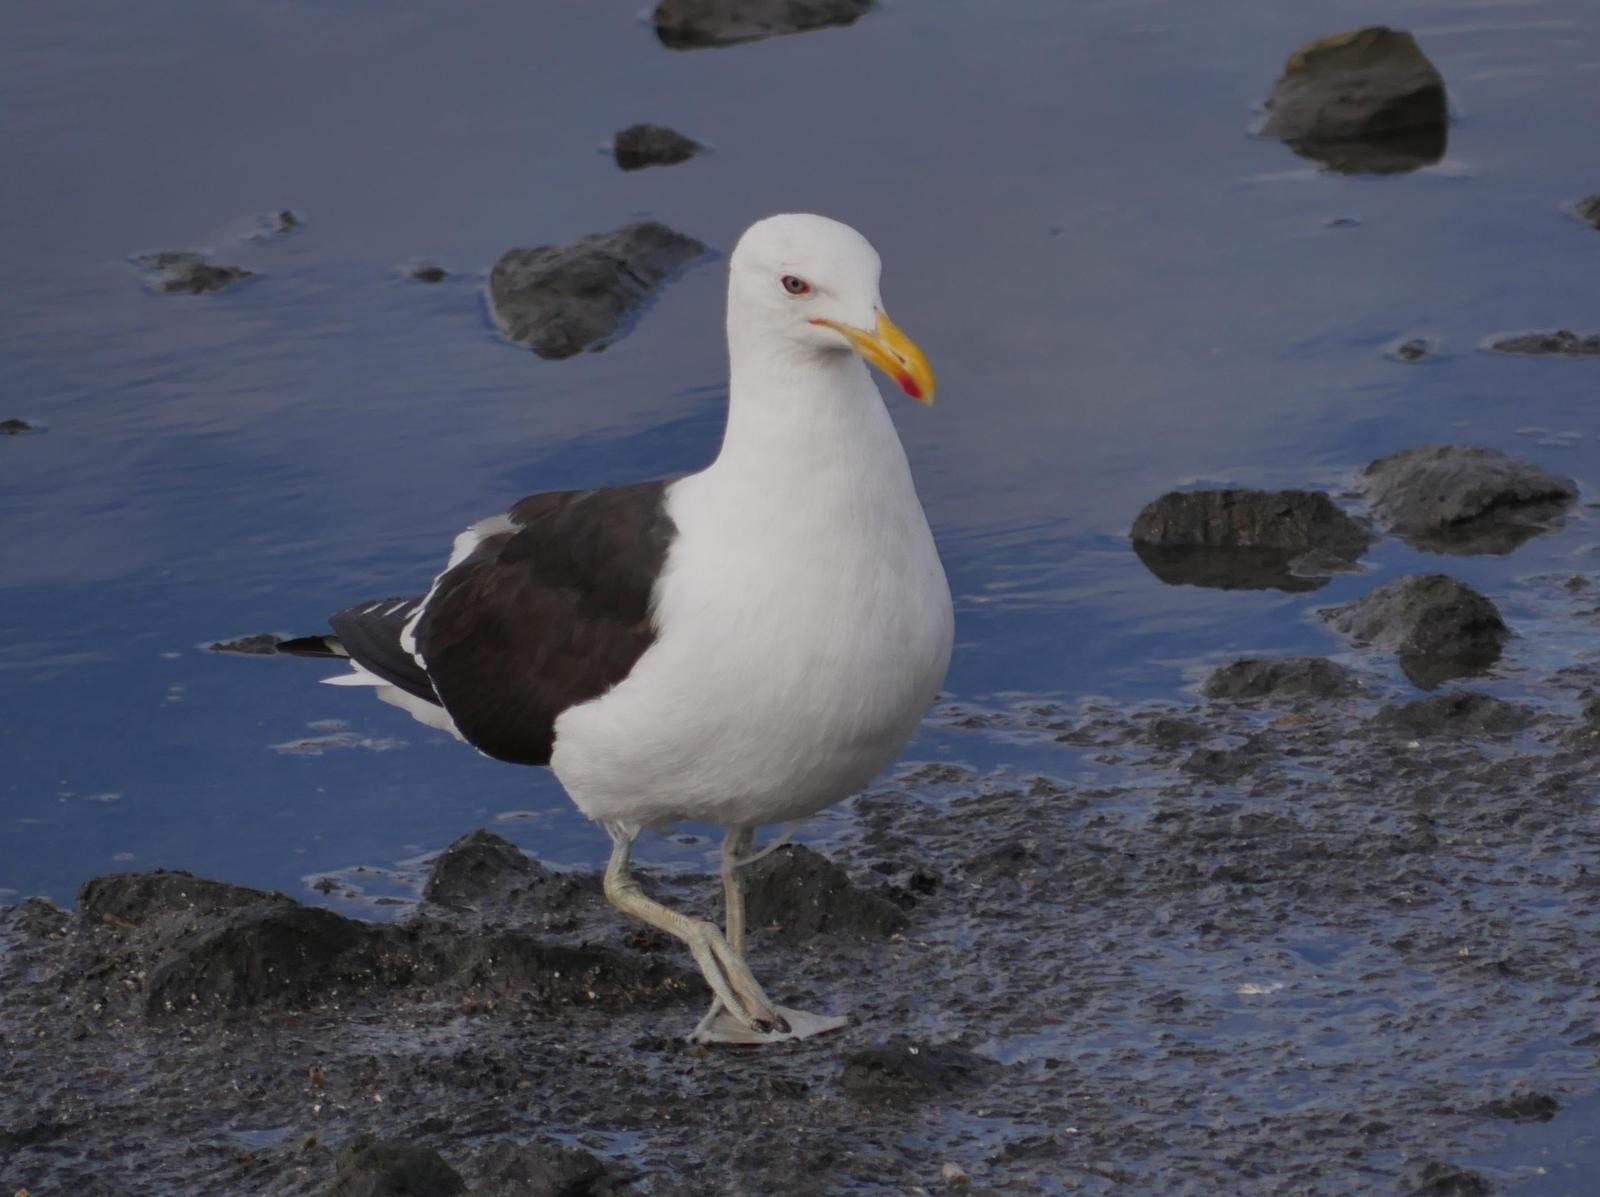 Kelp Gull Photo by Peter Lowe